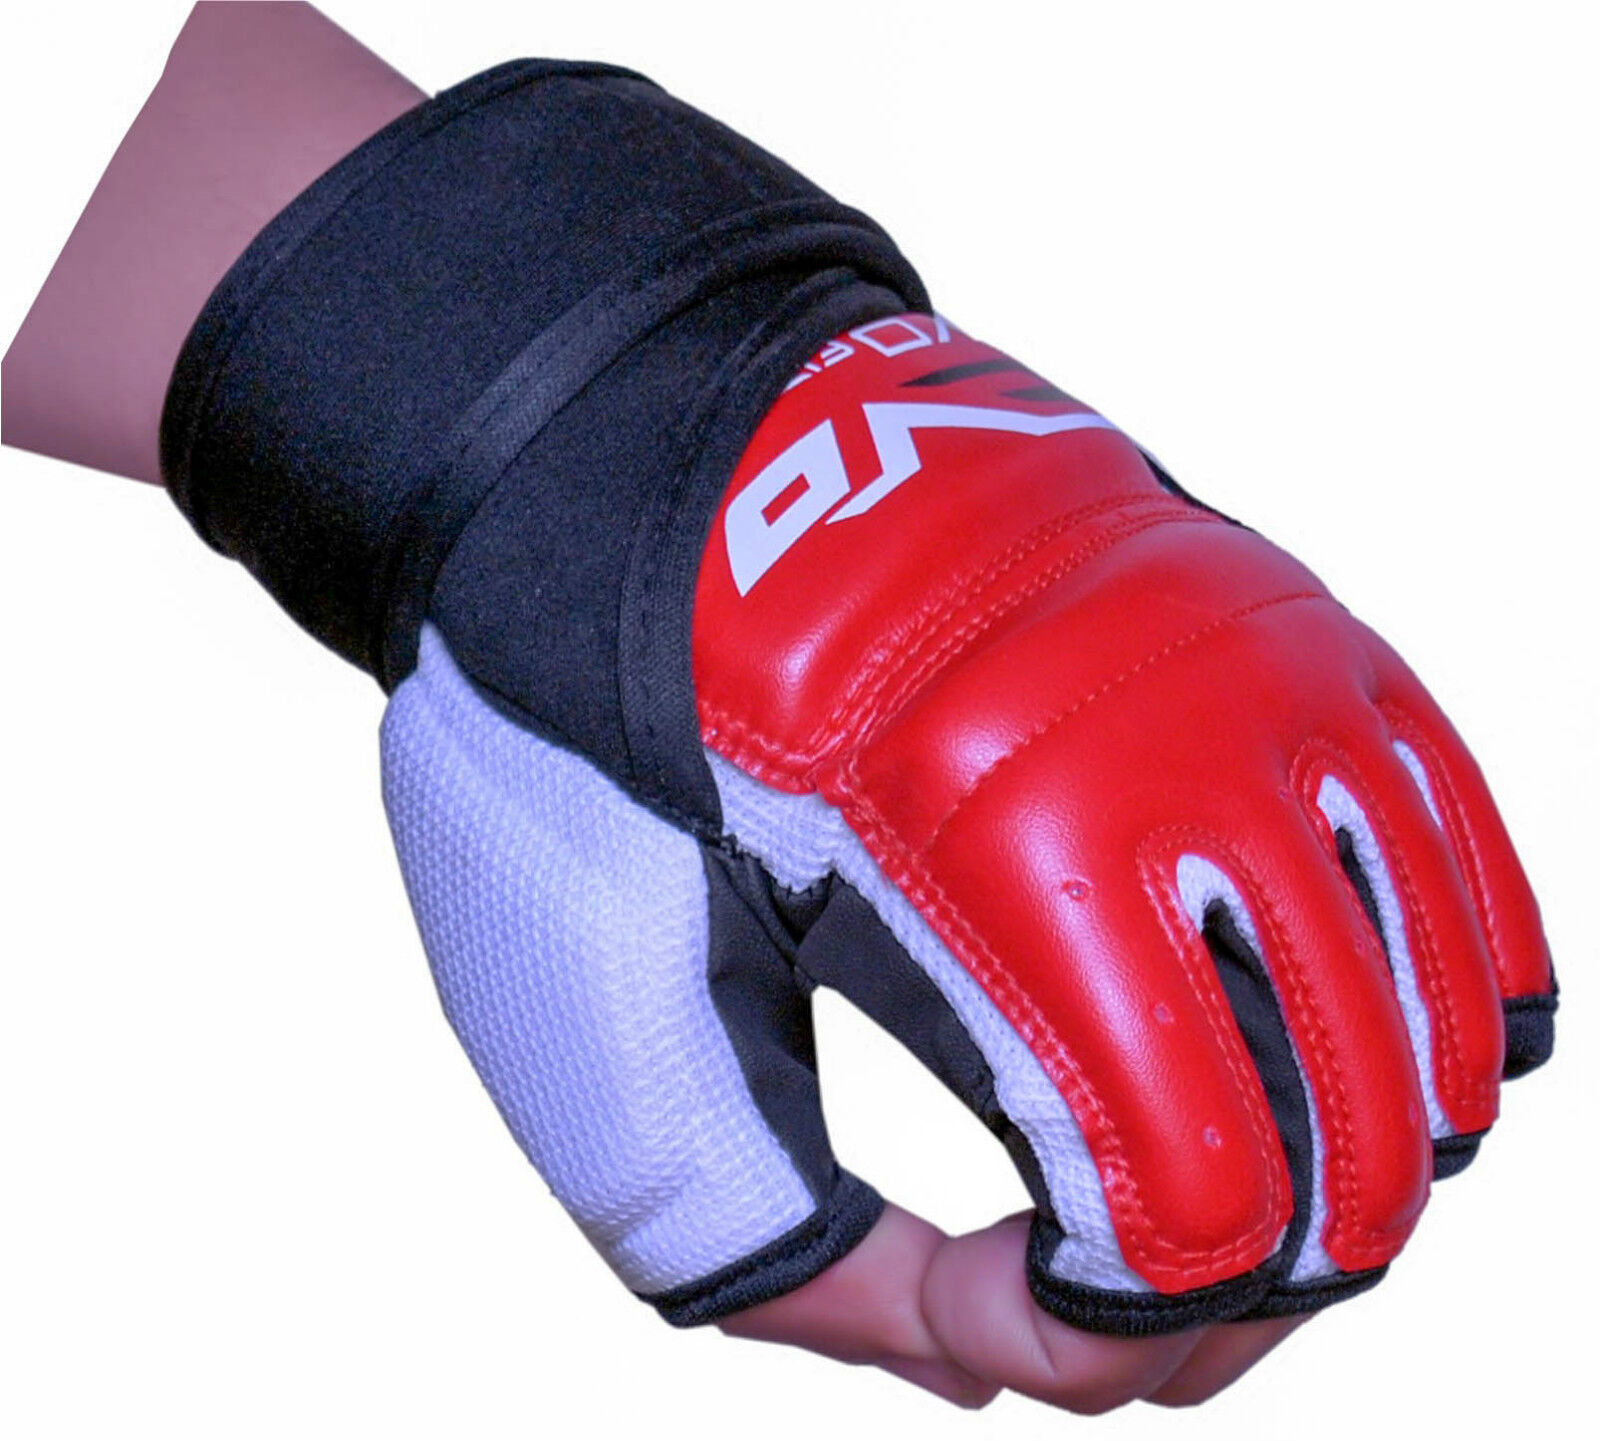 Evo Fitness Boxing Gloves: EVO MMA GEL Grappling Gloves Karate Mitts Boxing Martial